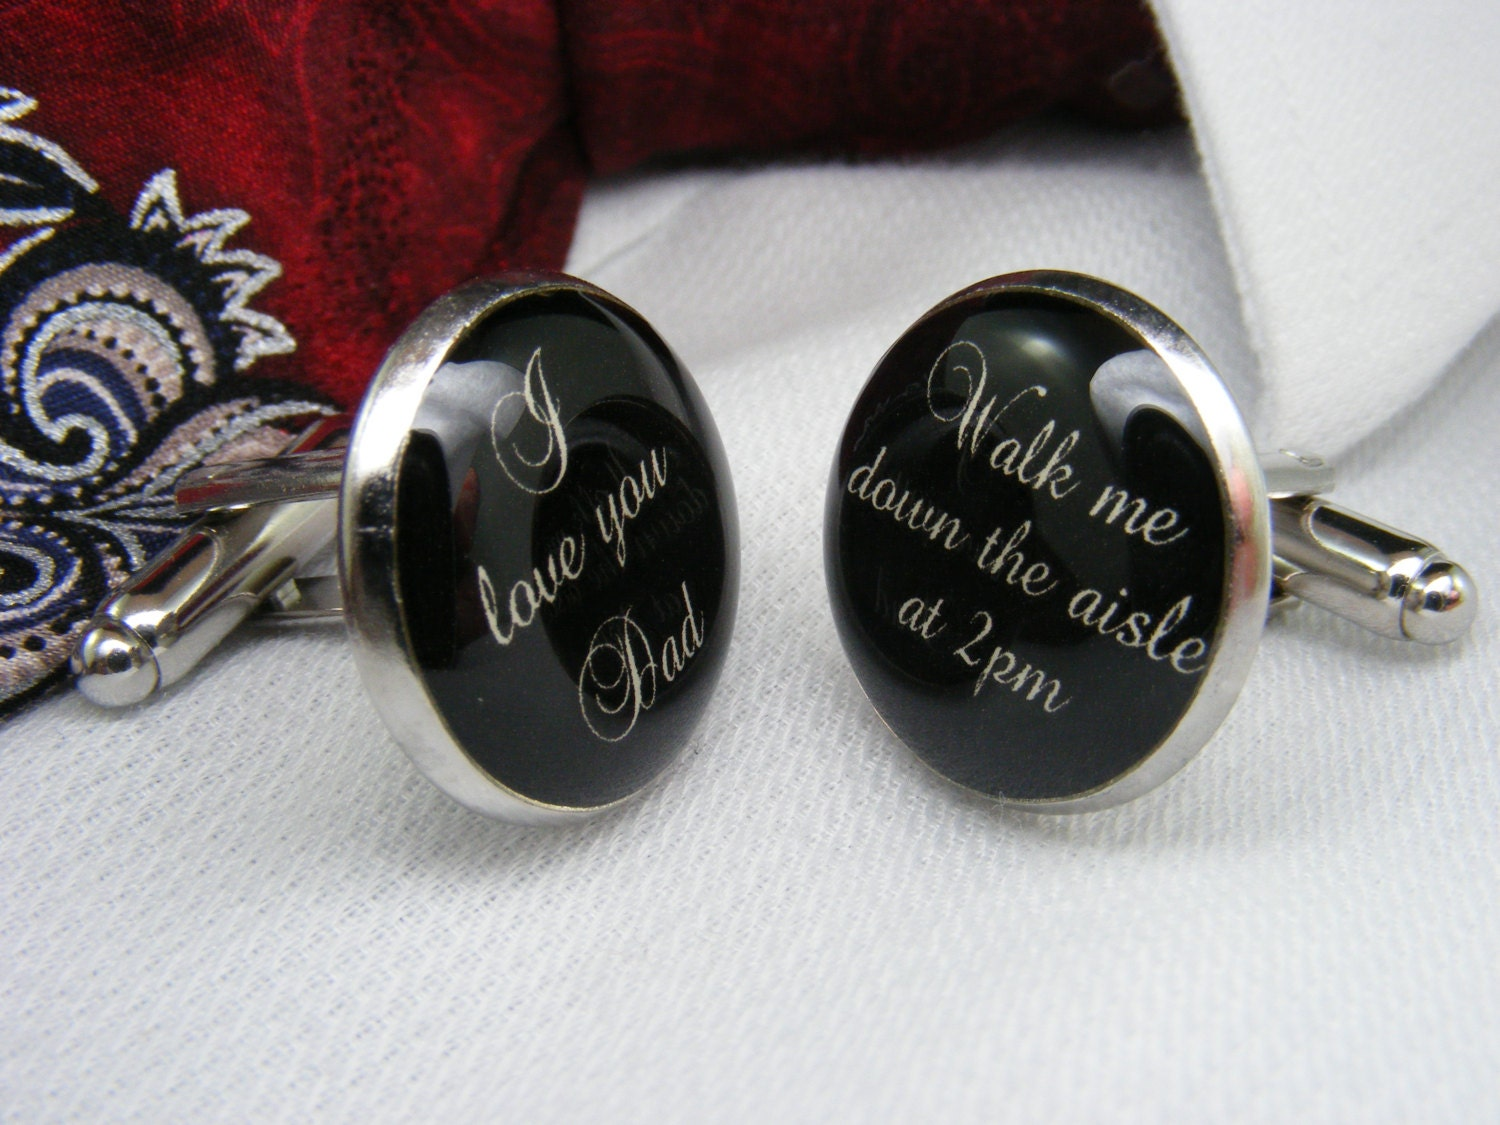 I Love You Dad Walk Me Down The Aisle At 2pm Cufflinks